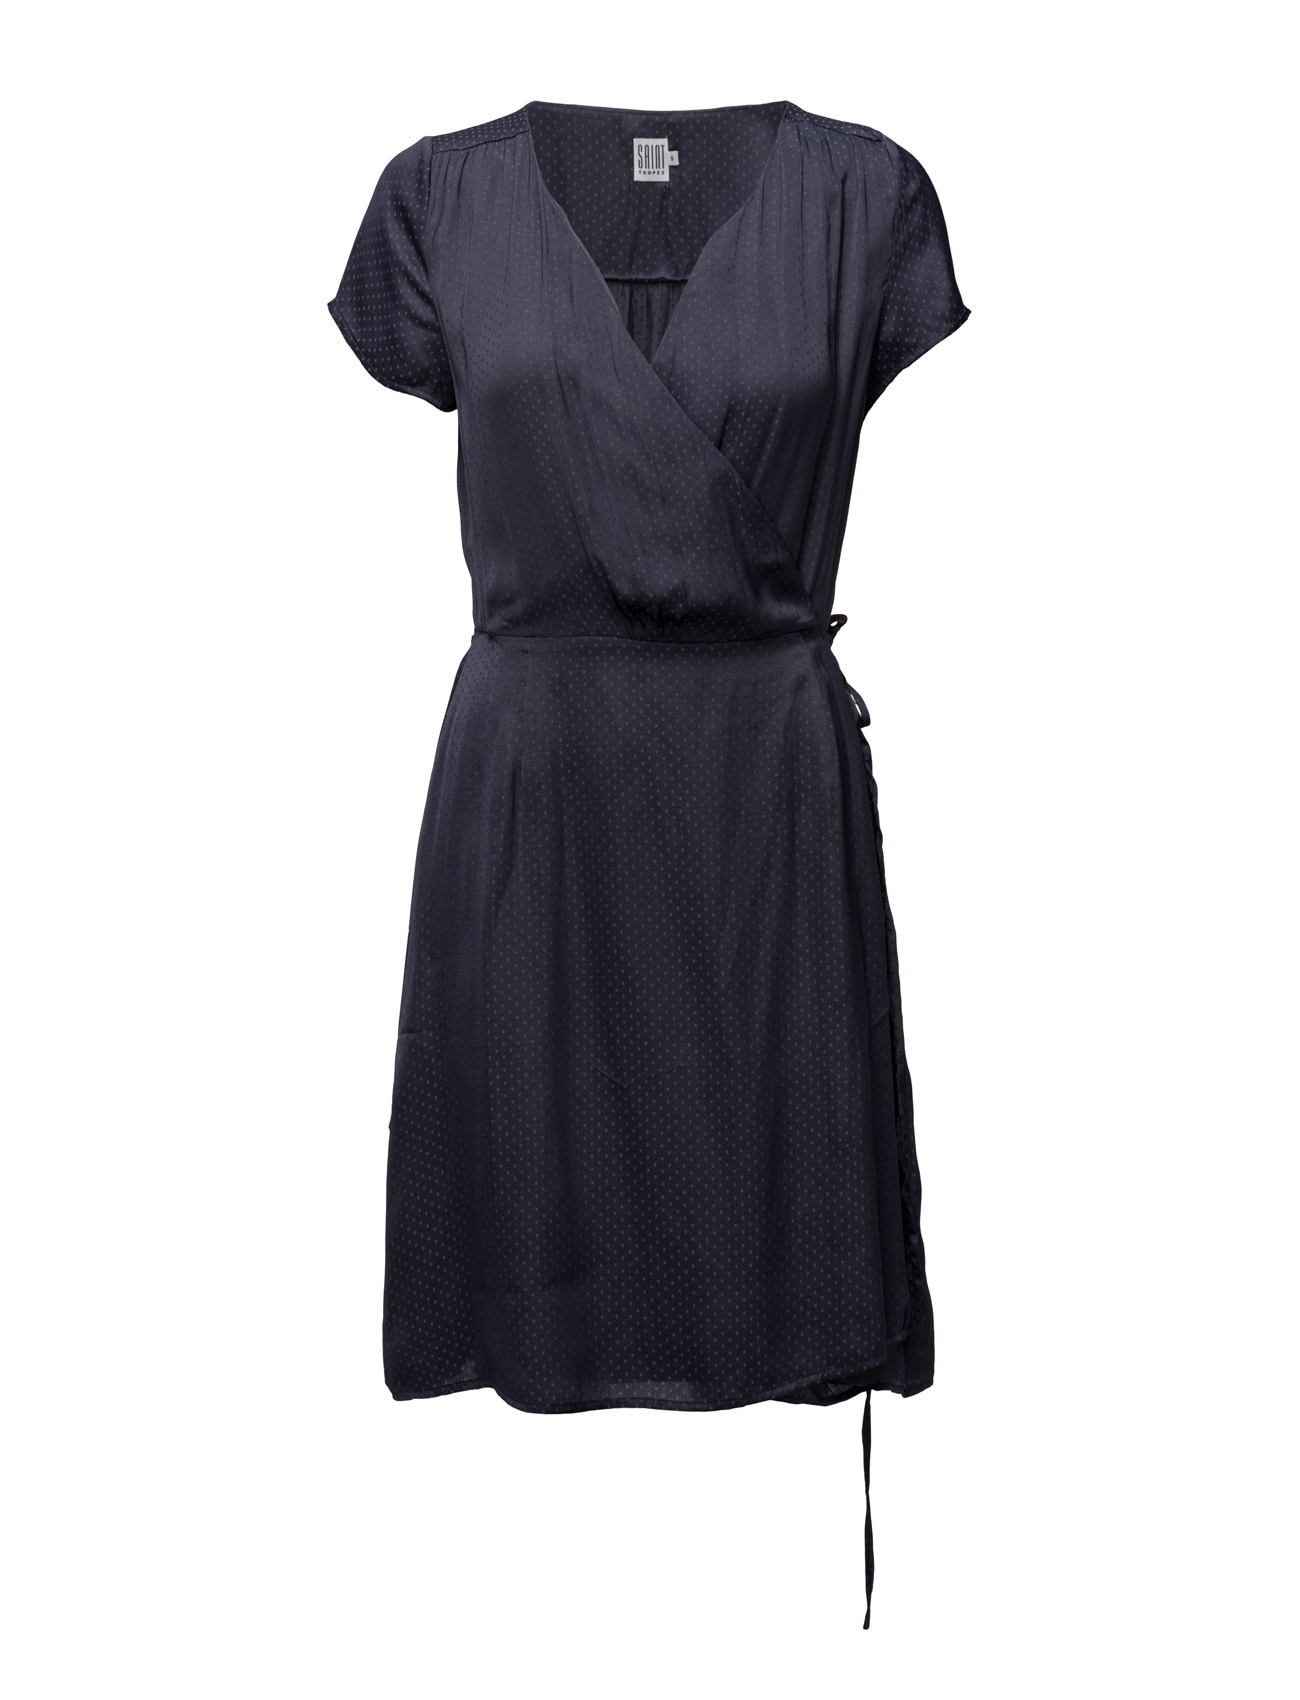 Wrap Dress Saint Tropez Knælange & mellemlange til Damer i Graphit